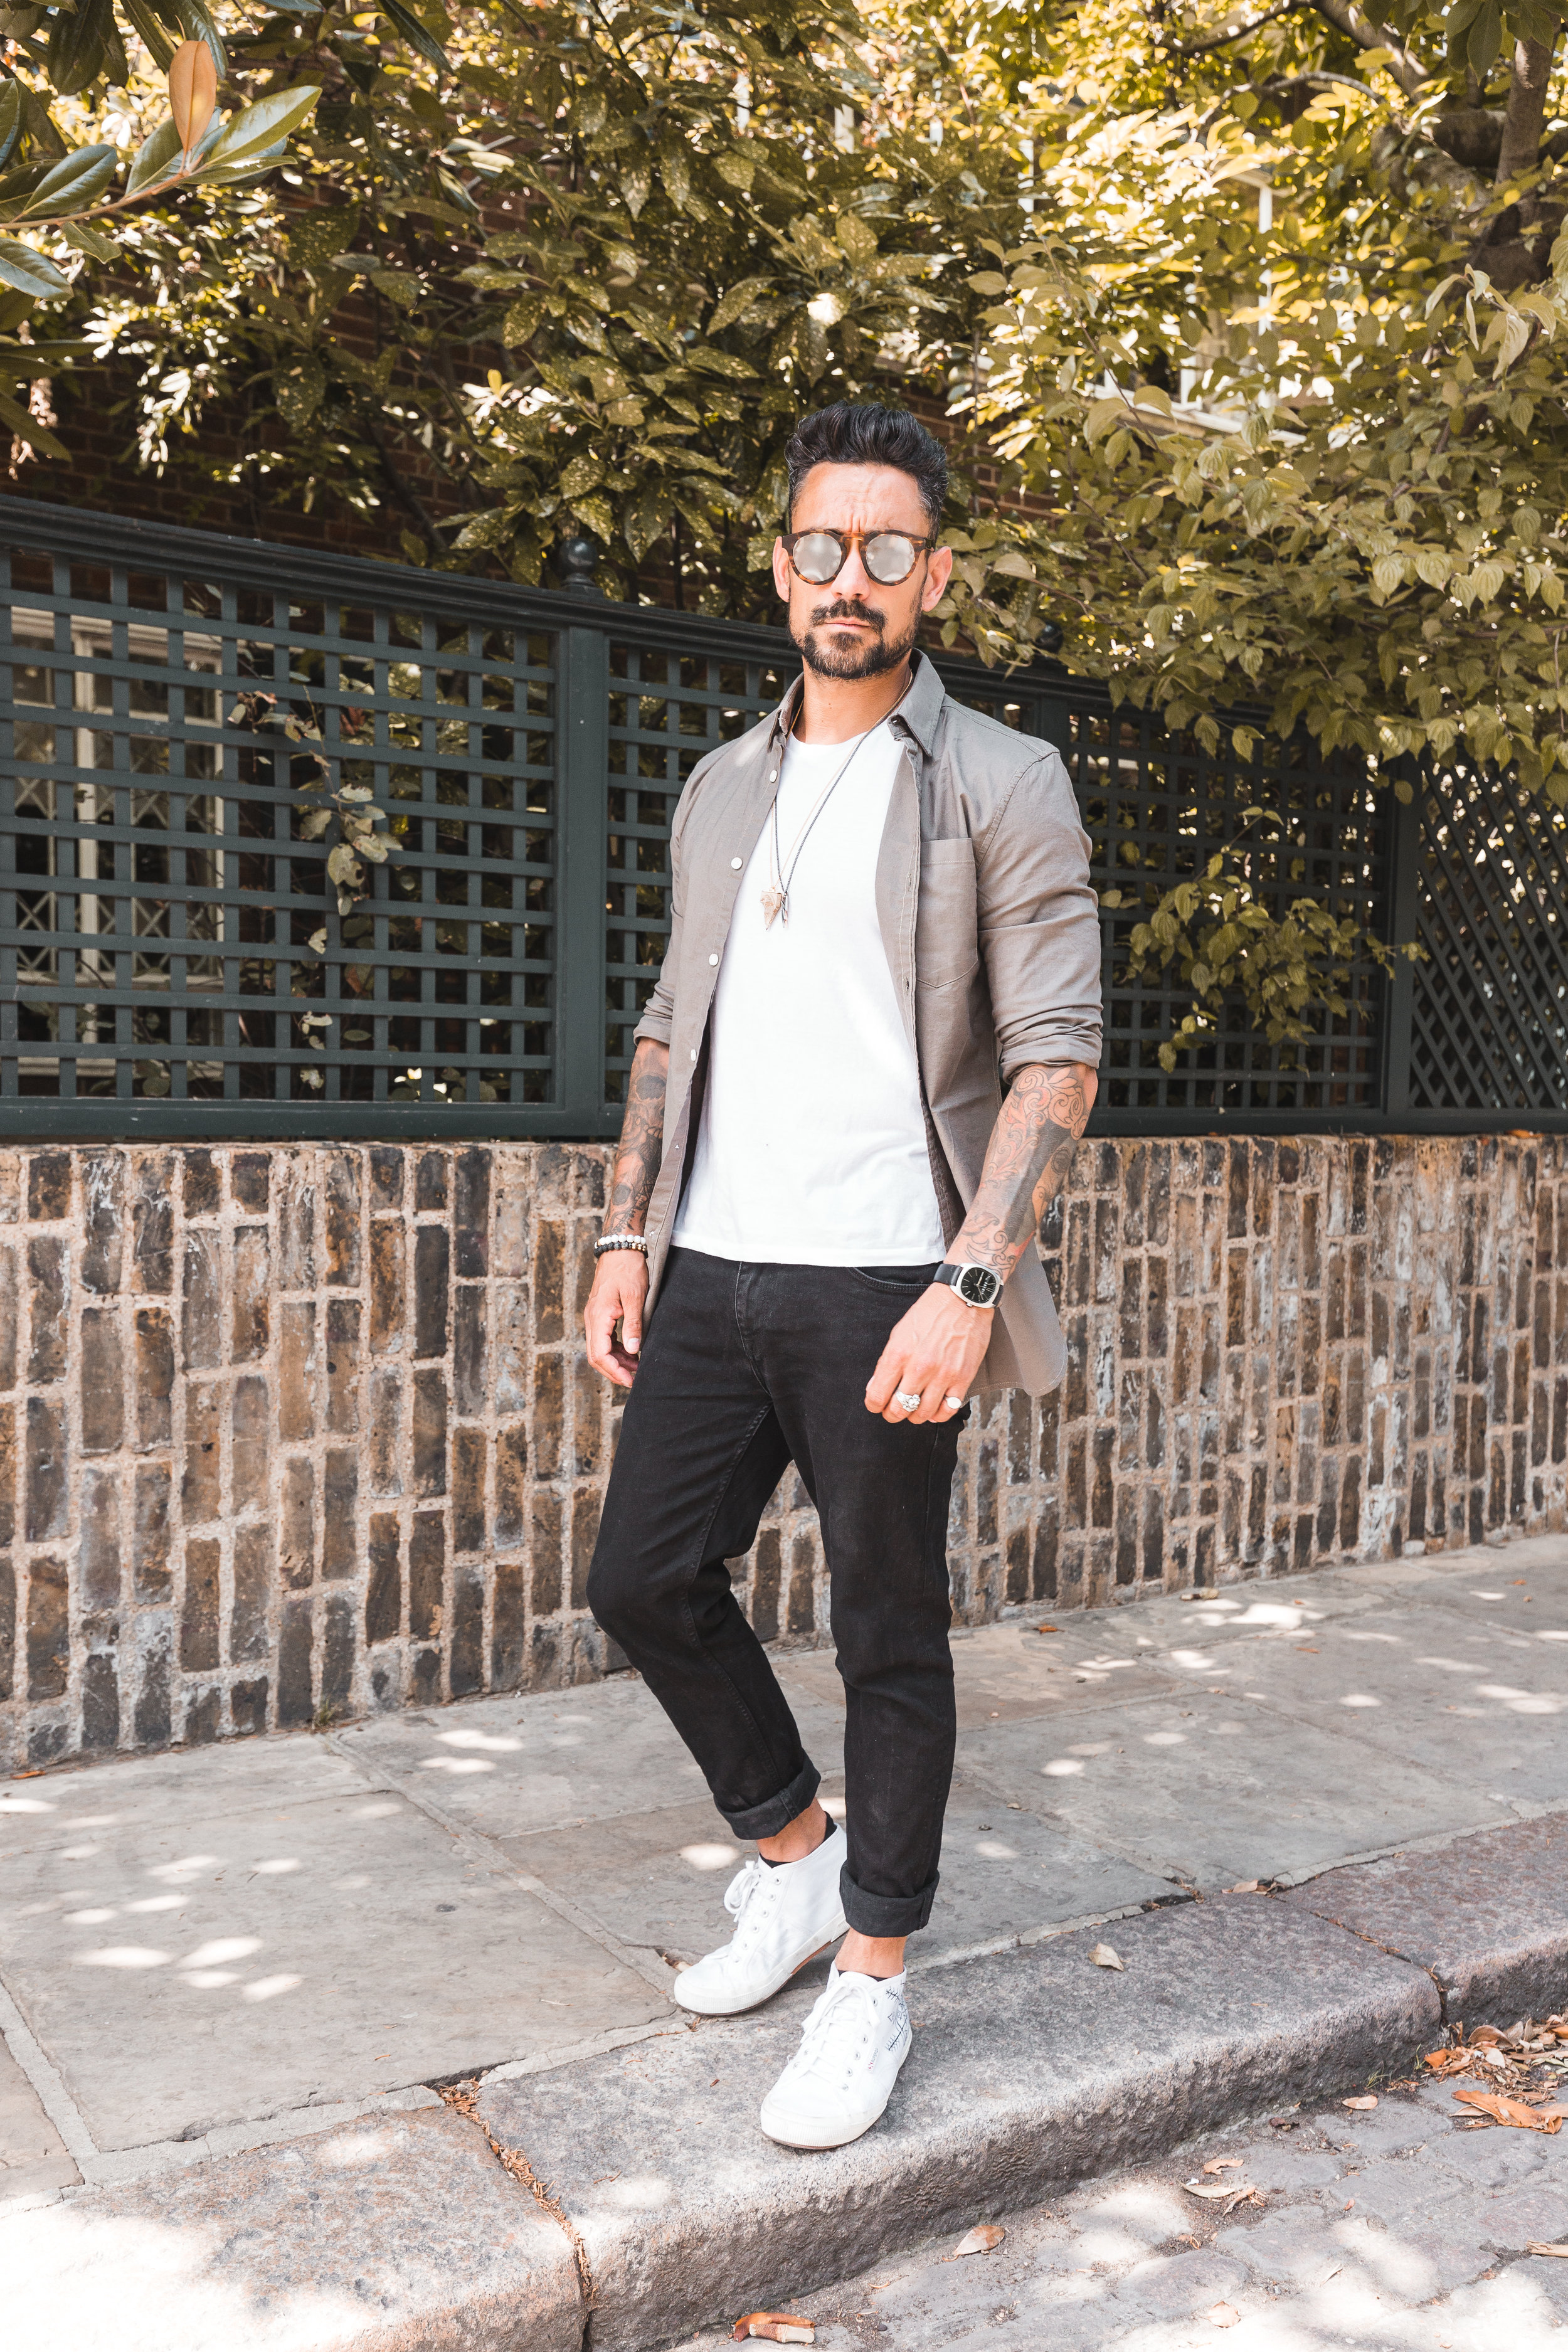 ab27afd694d0 Further Reading Blogs — MEN S STYLE BLOG